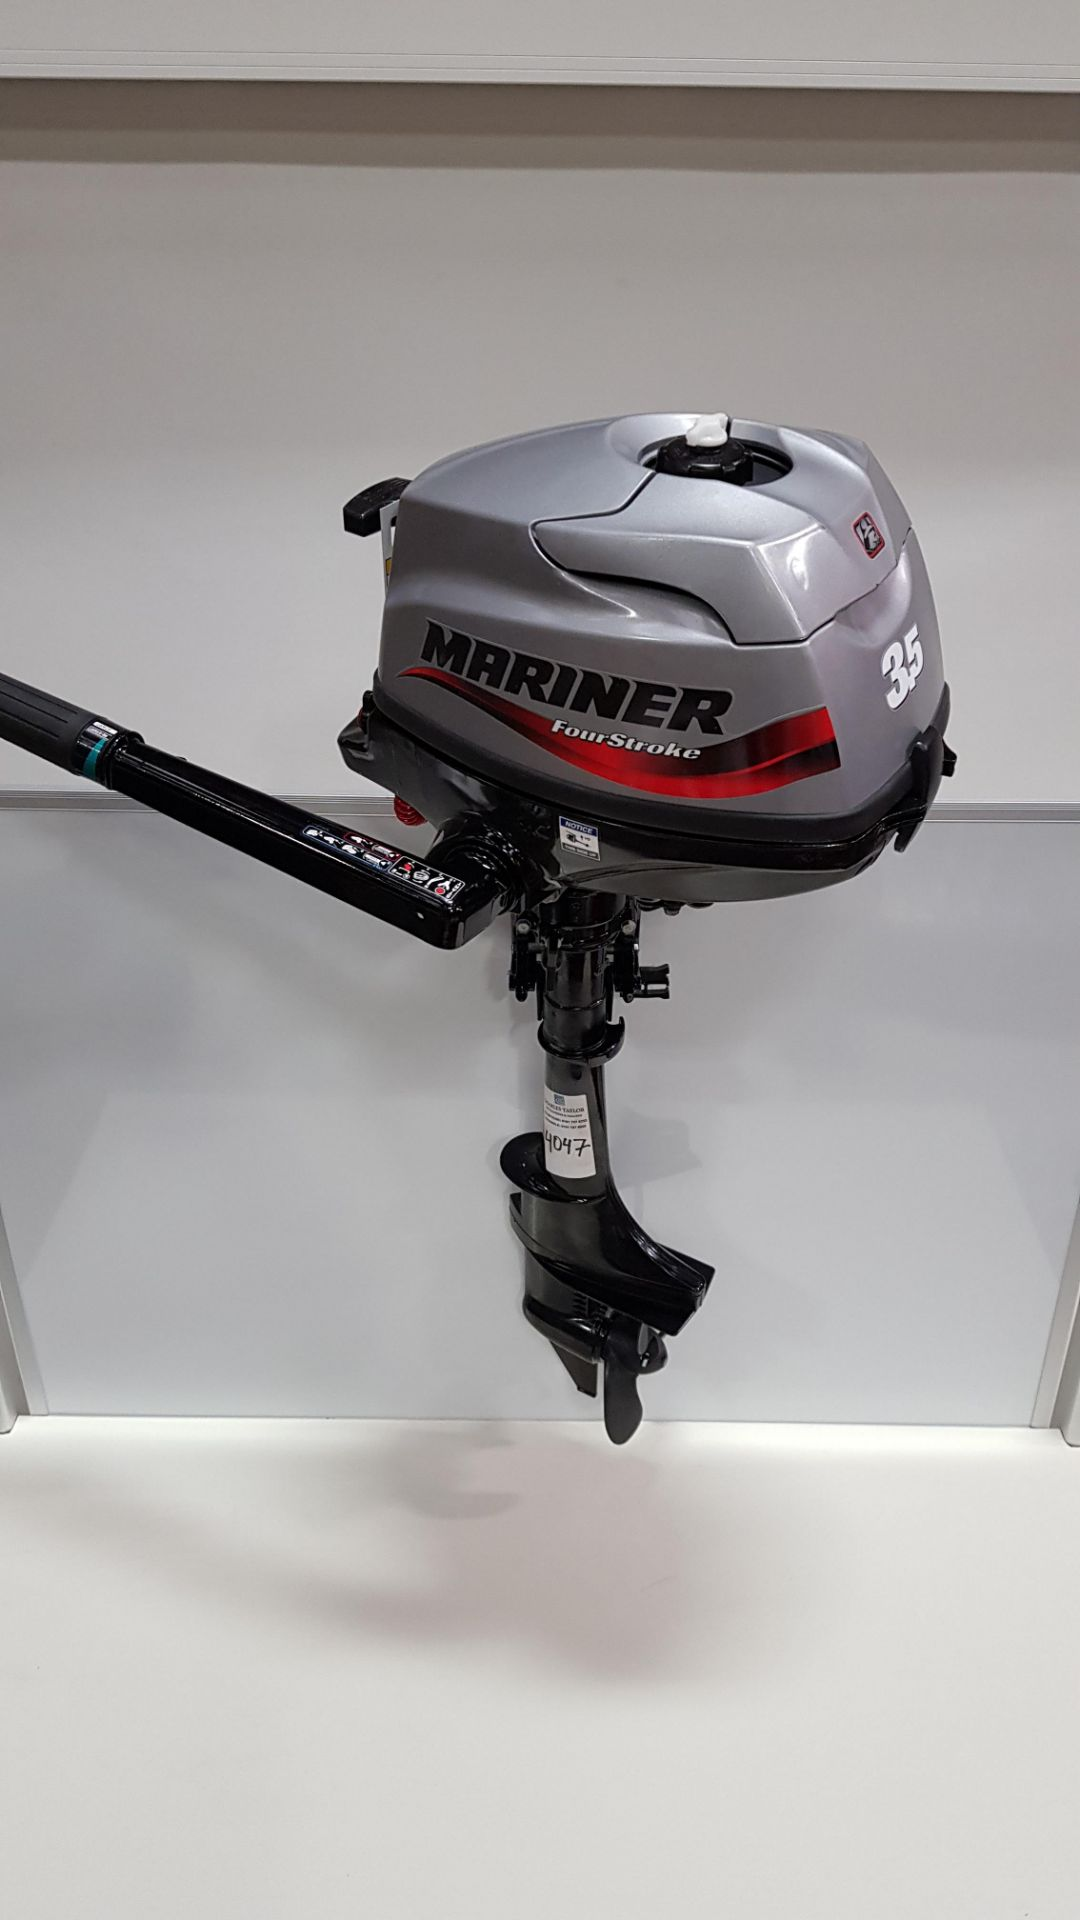 1 X (BRAND NEW) 3.5HP (MARINER) FOUR STROKE OUTBOARD MOTOR